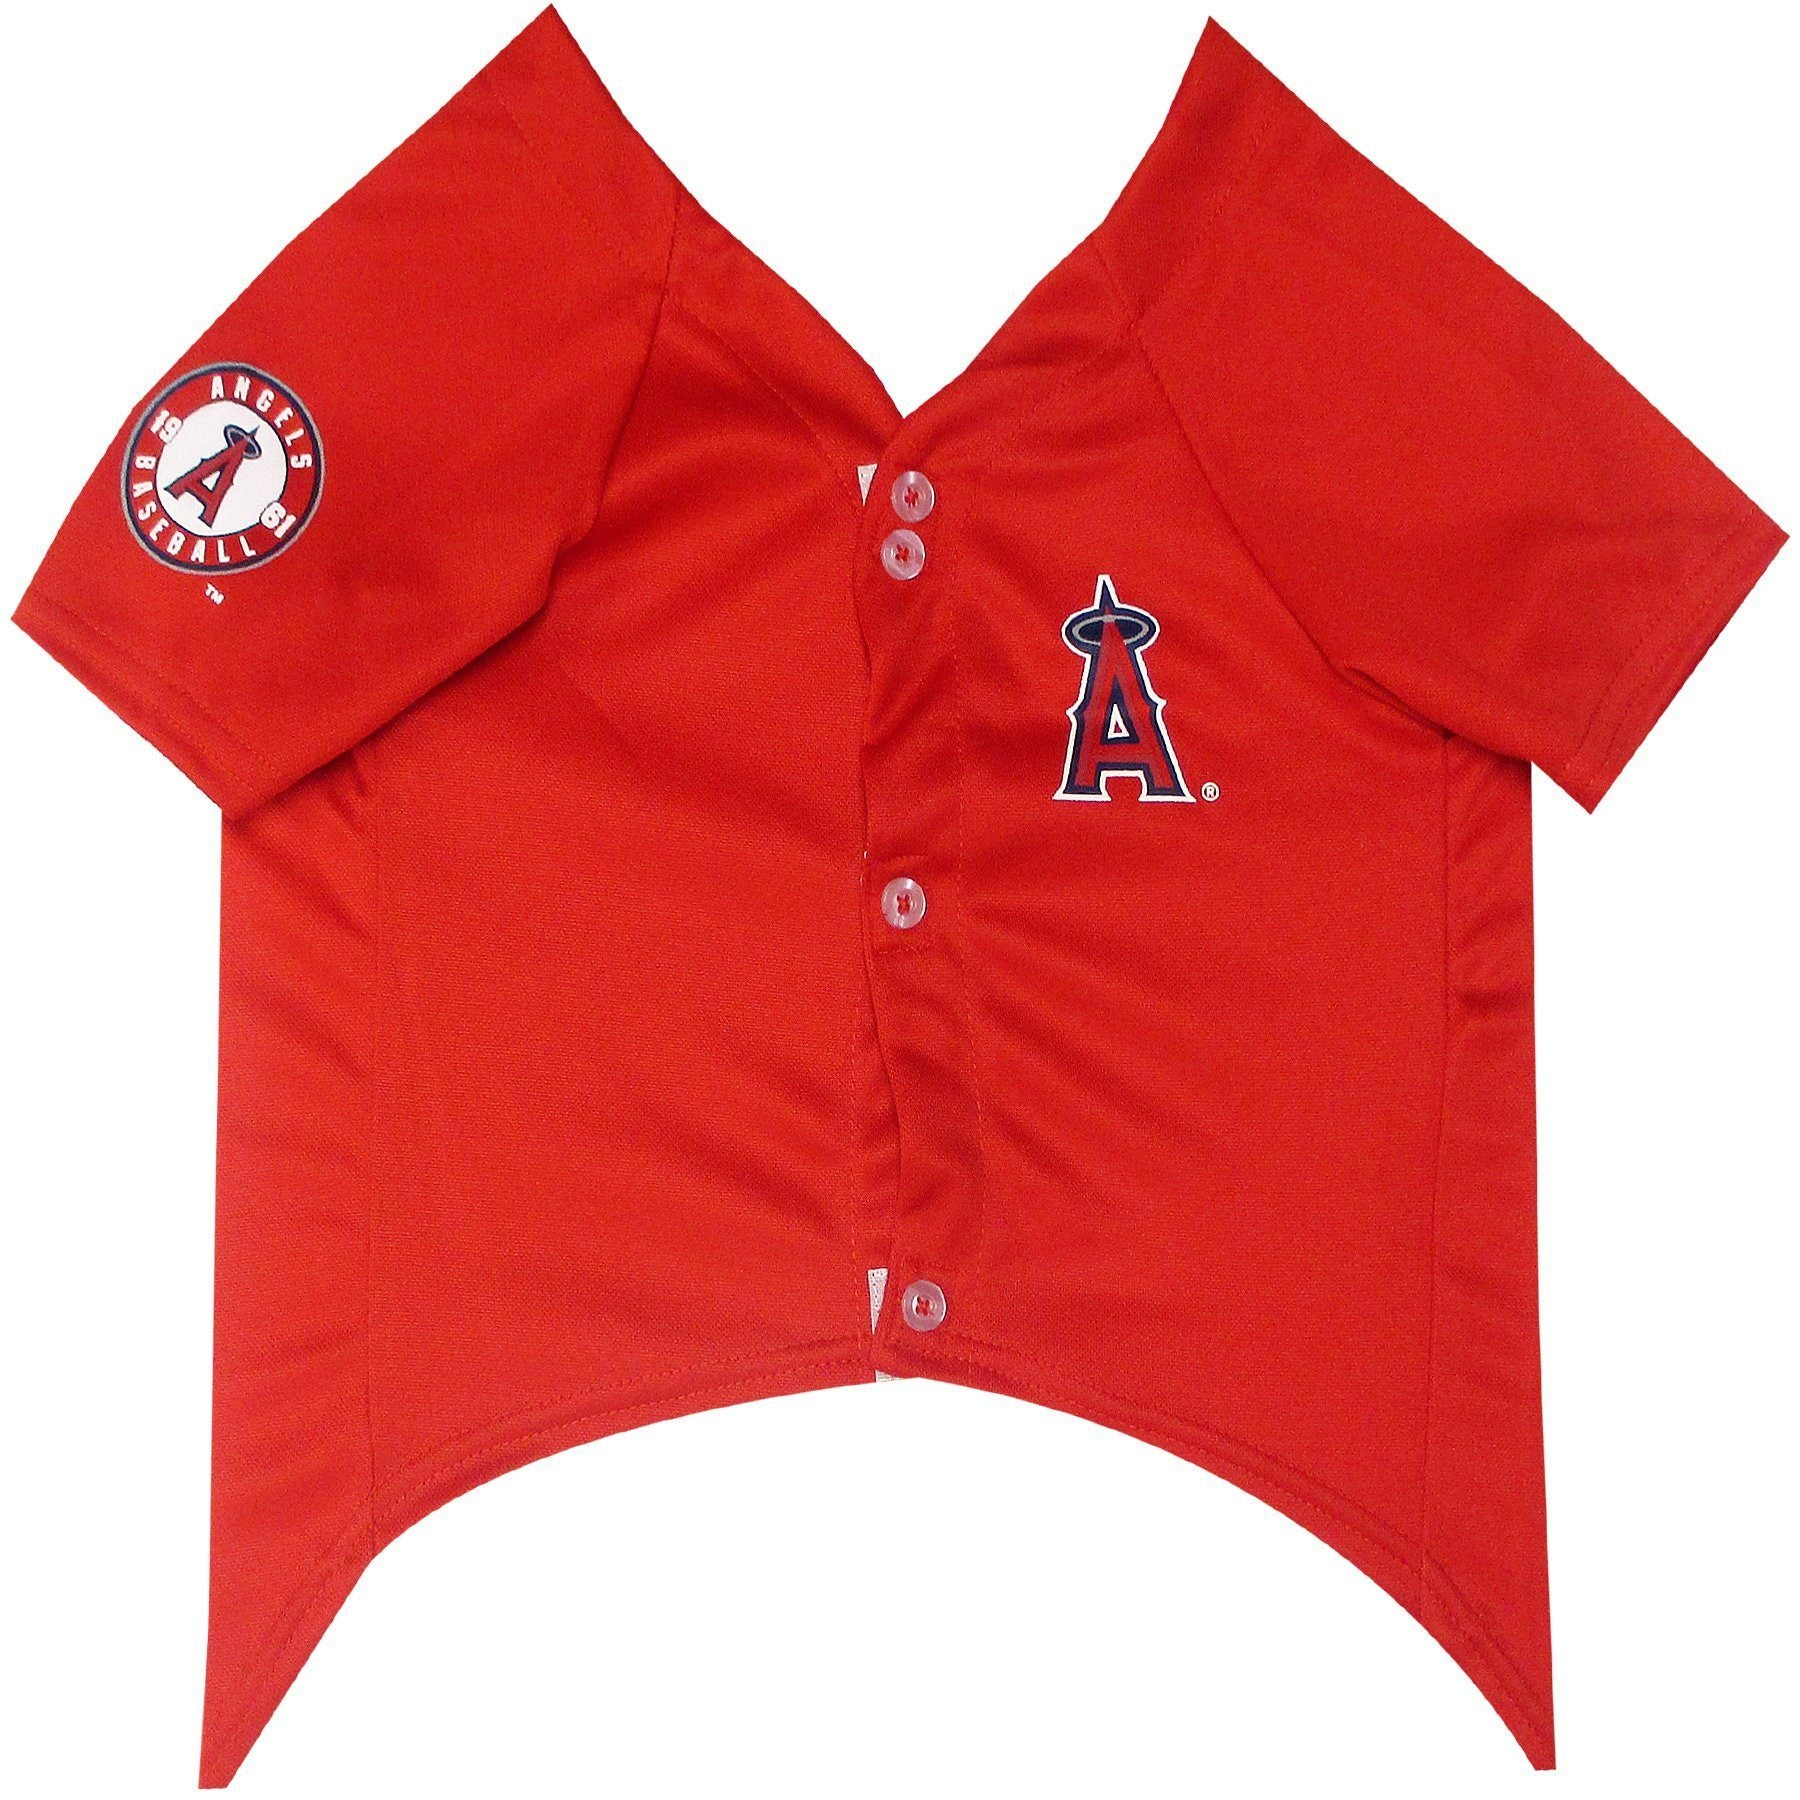 Los Angeles Angels Puppy Dog Baseball Jersey - Jersey Champs - Custom Basketball, Baseball, Football & Hockey Jerseys